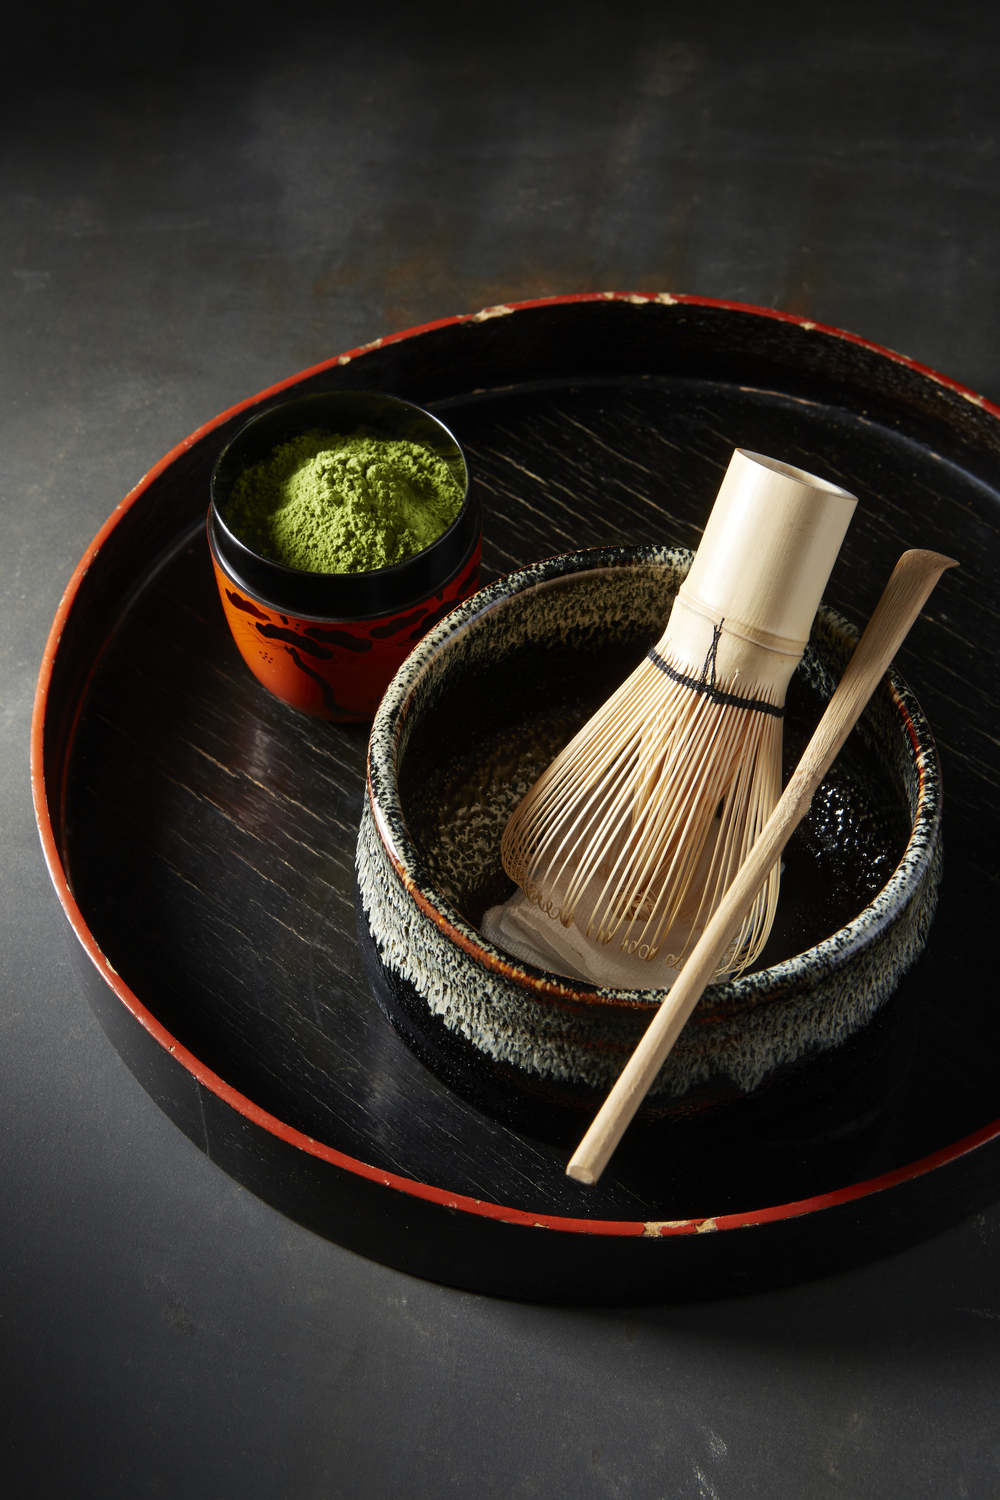 The traditional presentation for the Japanese tea ceremony, sadō, the way of tea. The bamboo whisk whips the matcha green tea powder into a fine foam and the minature mountain of matcha is symbolic of the tea ceremony's Buddhist origins.